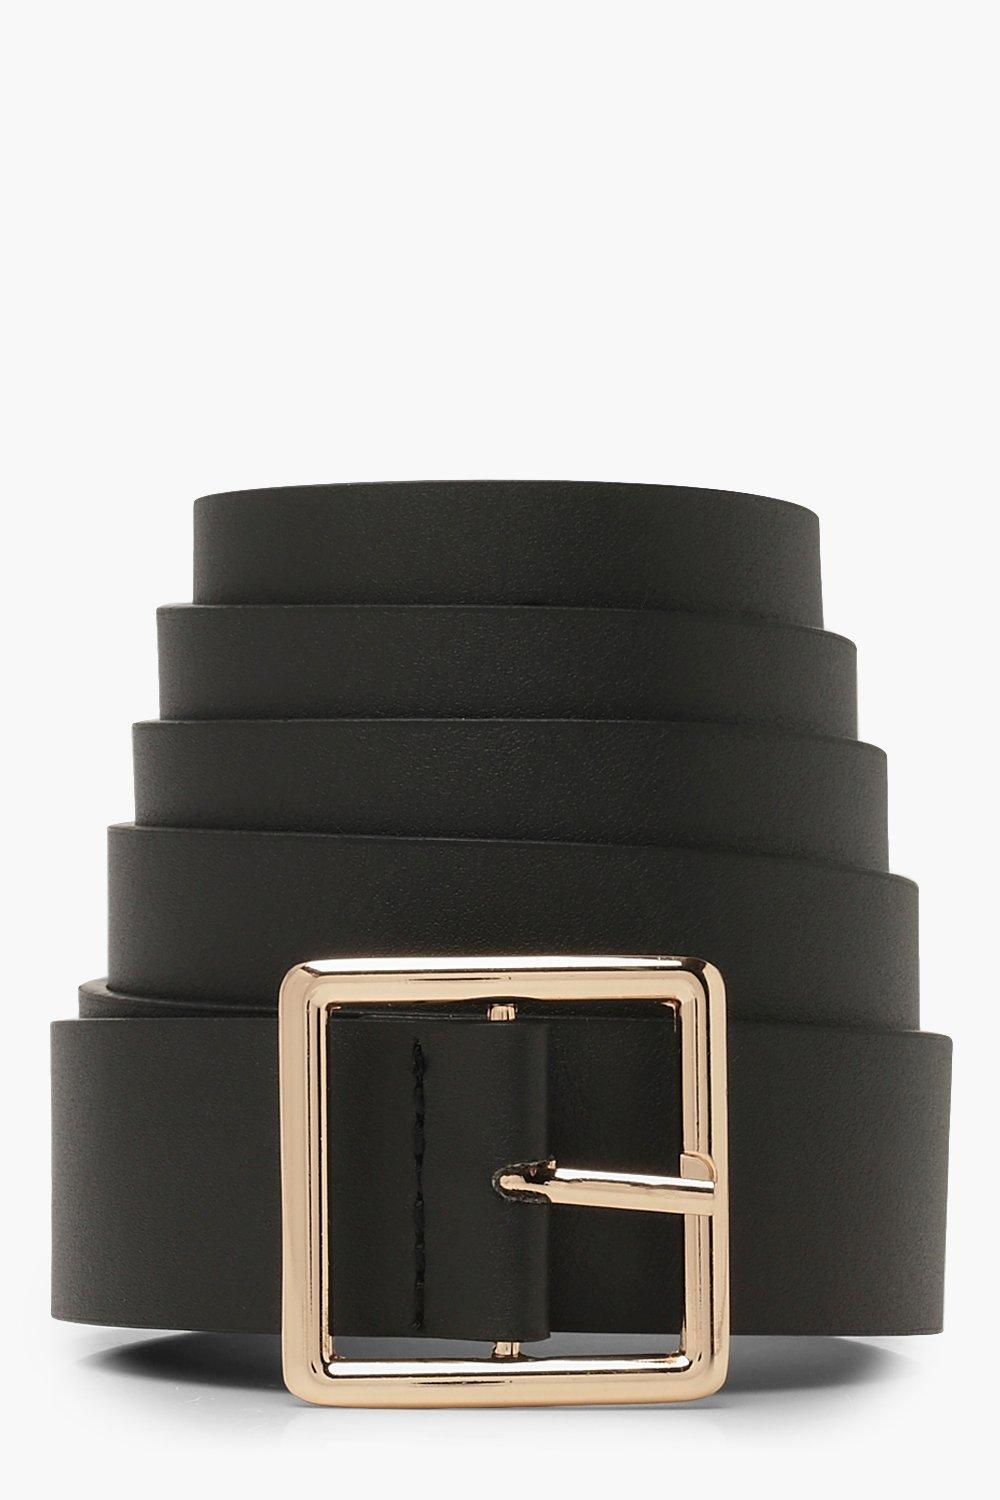 Plus Square Buckle Boyfriend Belt